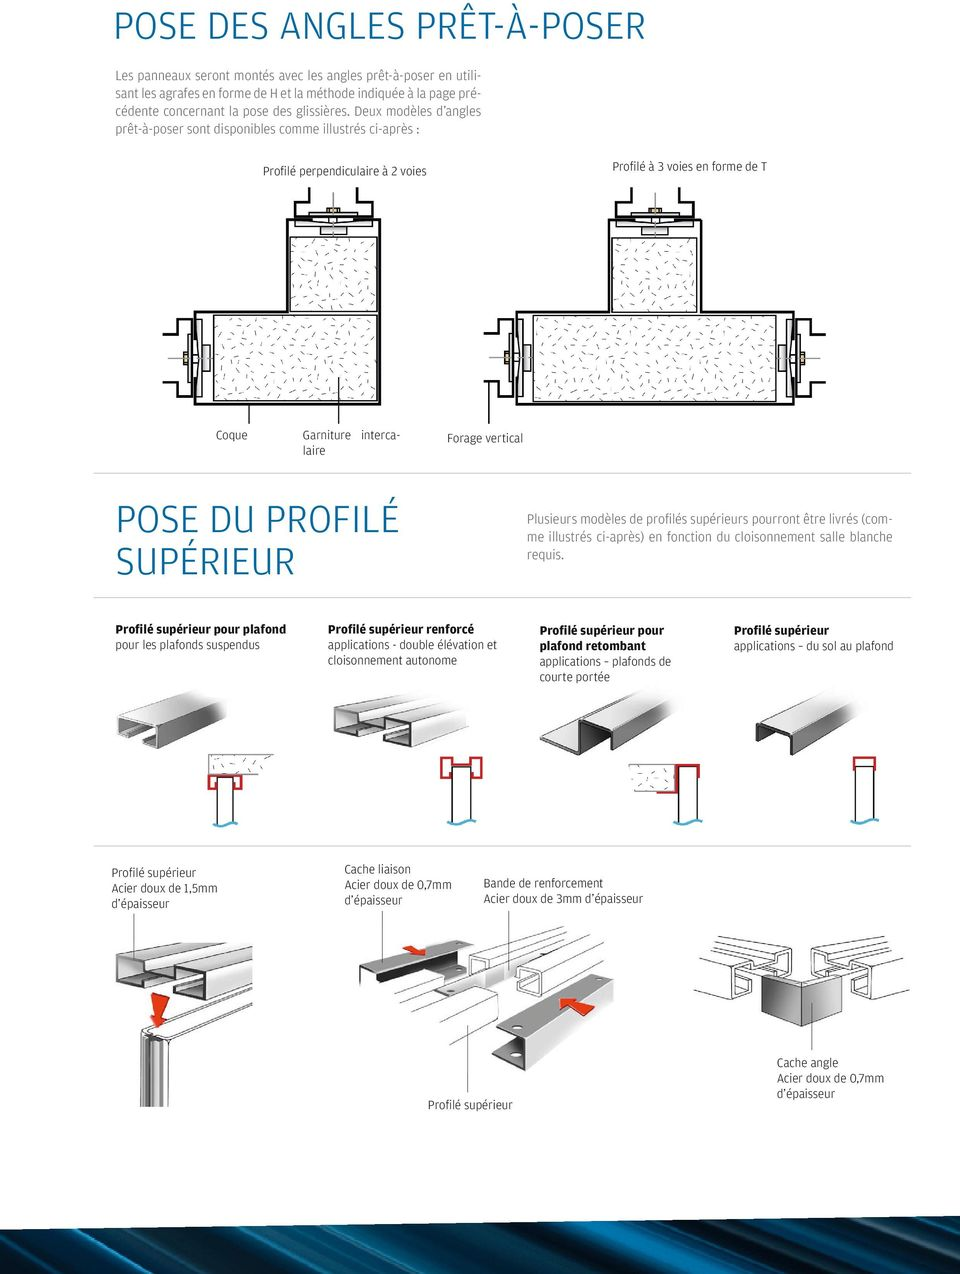 Deux modèles d angles prêt-à-poser sont disponibles comme illustrés ci-après : Profilé à 3 voies en forme de T Profilé perpendiculaire à 2 voies Coque Garniture intercalaire Forage vertical Pose du